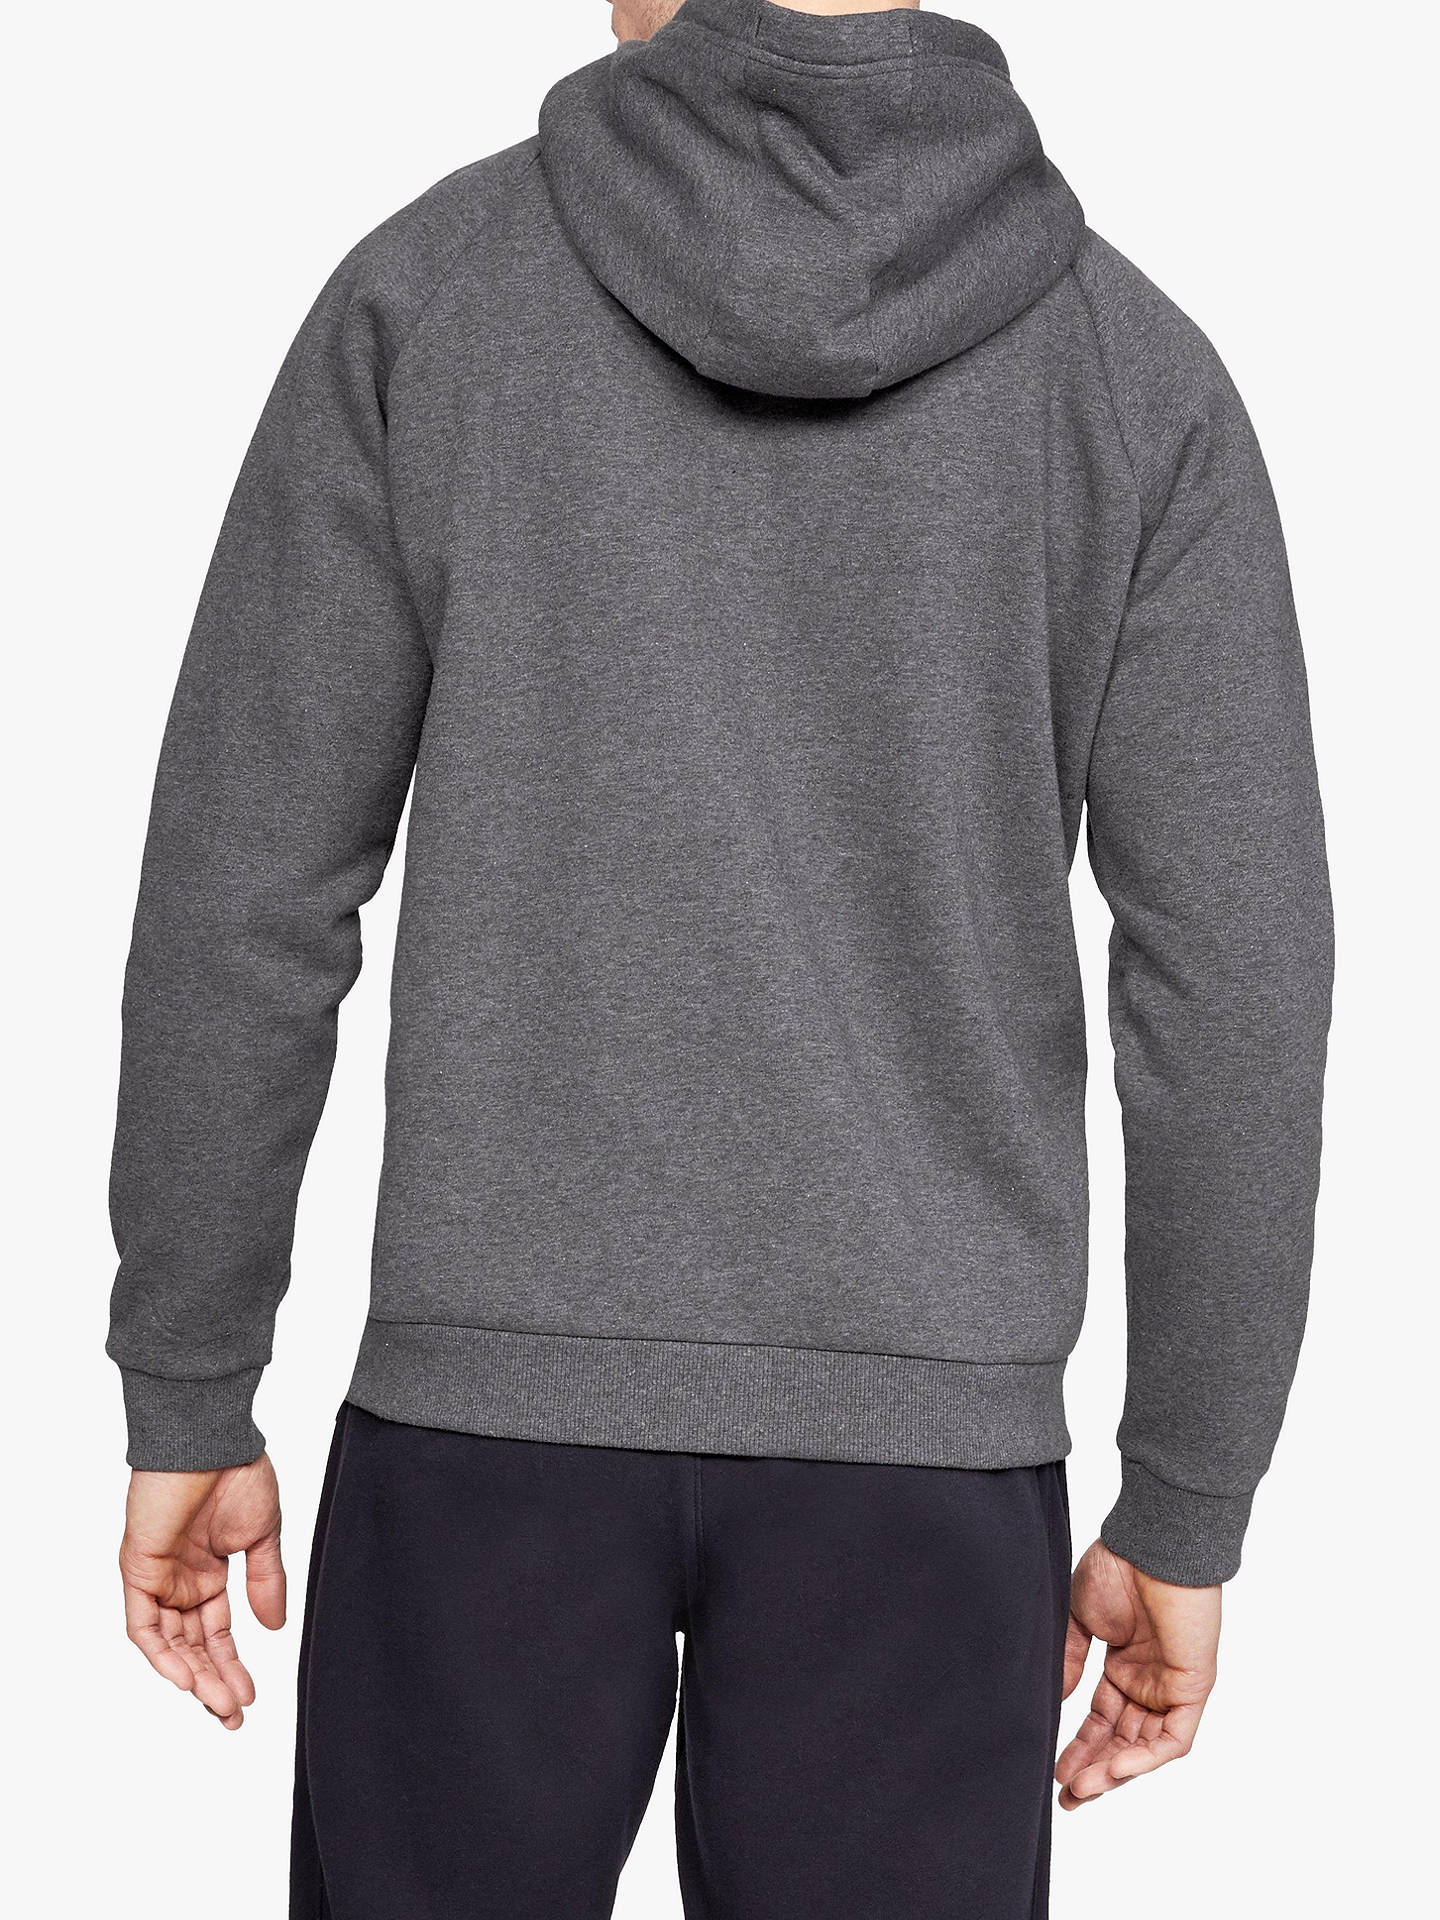 BuyUnder Armour Rival Fleece Training Hoodie, Grey, S Online at johnlewis.com